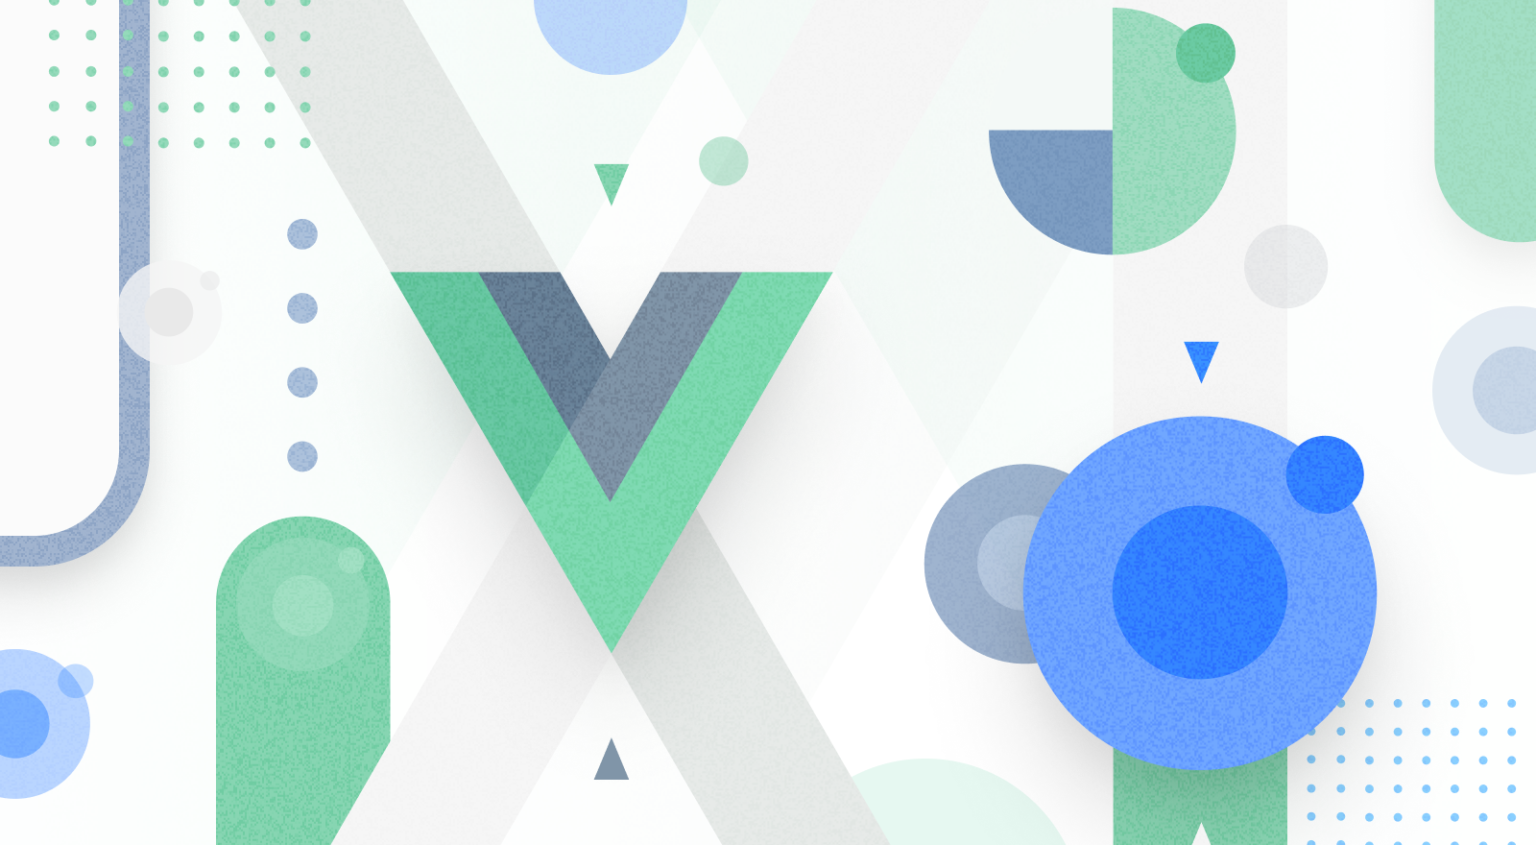 Ionic Vue Final is out!